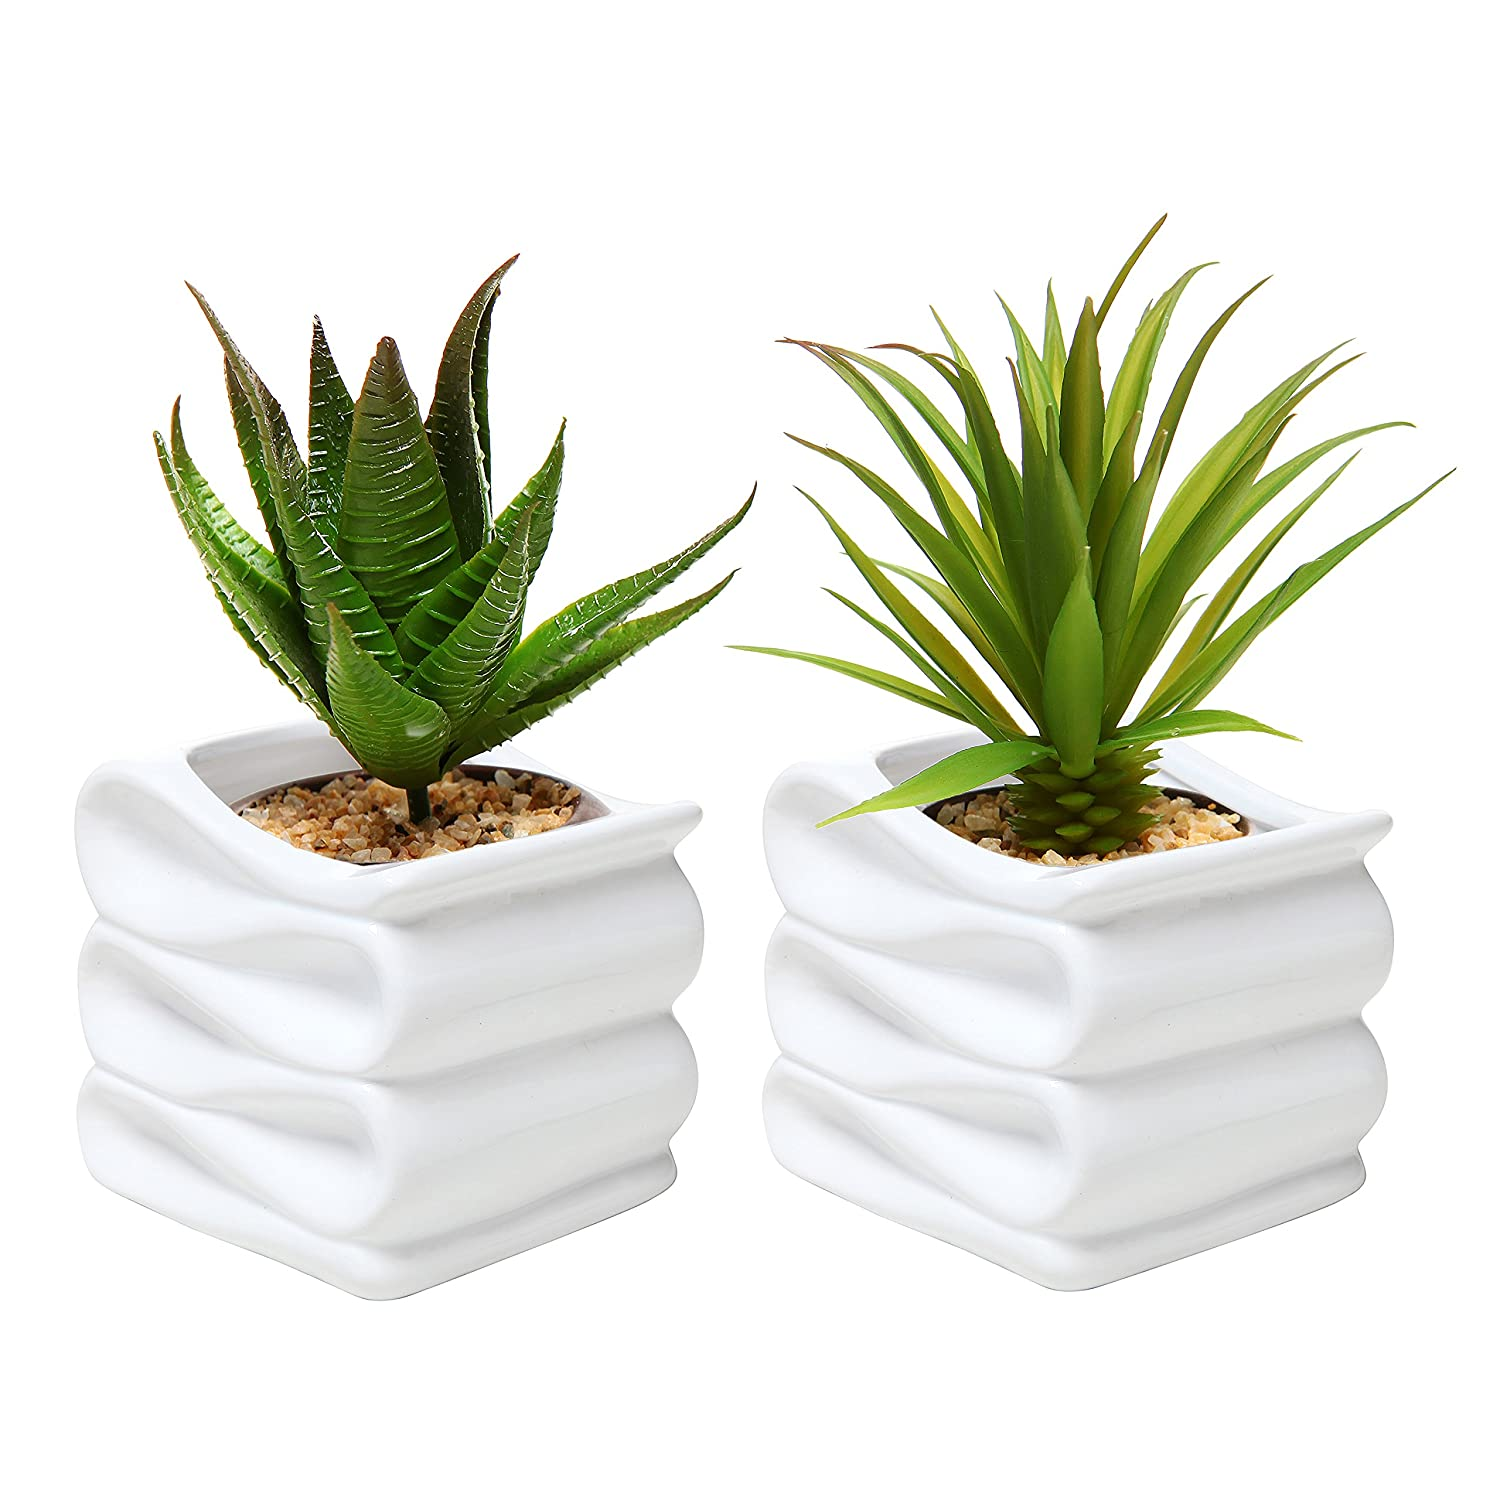 Amazon.com : MyGift Set of 2 Modern Decorative Folded Design Small ...